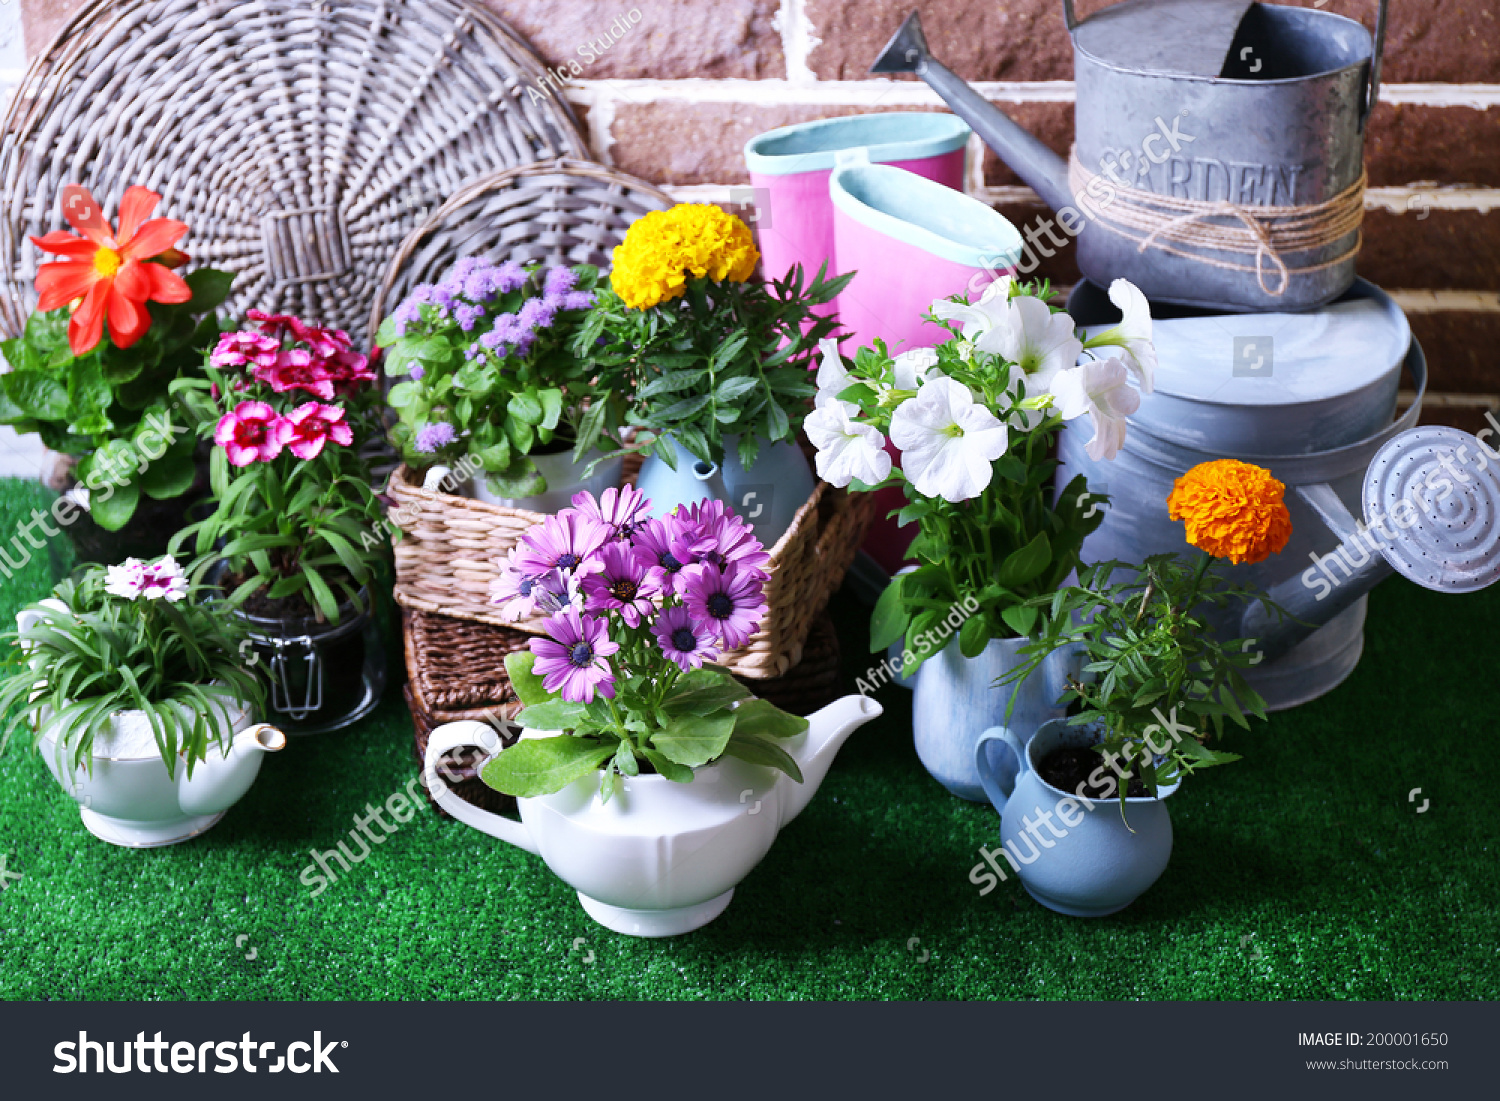 Flowers Decorative Pots Garden Tools On Stock Photo (Royalty Free ...